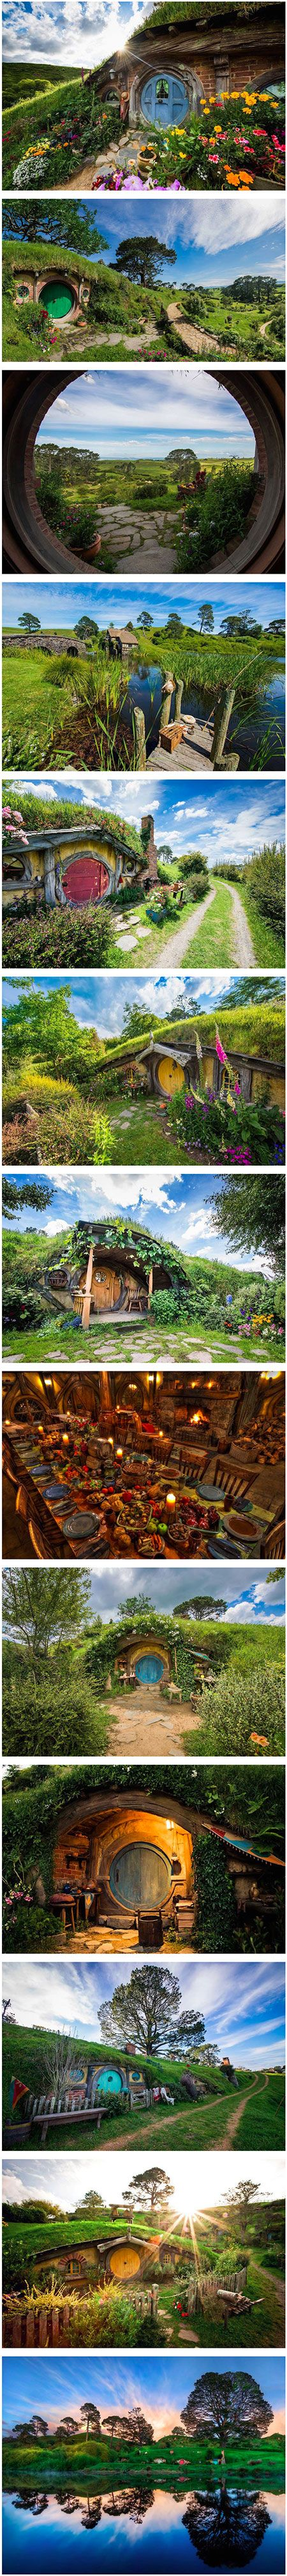 When Peter Jackson spotted the Alexander Farm during an aerial search of the North Island for the best possible locations to film The Lord of The Rings film trilogy, he immediately thought it was perfect for Hobbiton. It is now a permanent attraction complete with hobbit holes, gardens, bridge, Mill and The Green Dragon Inn.